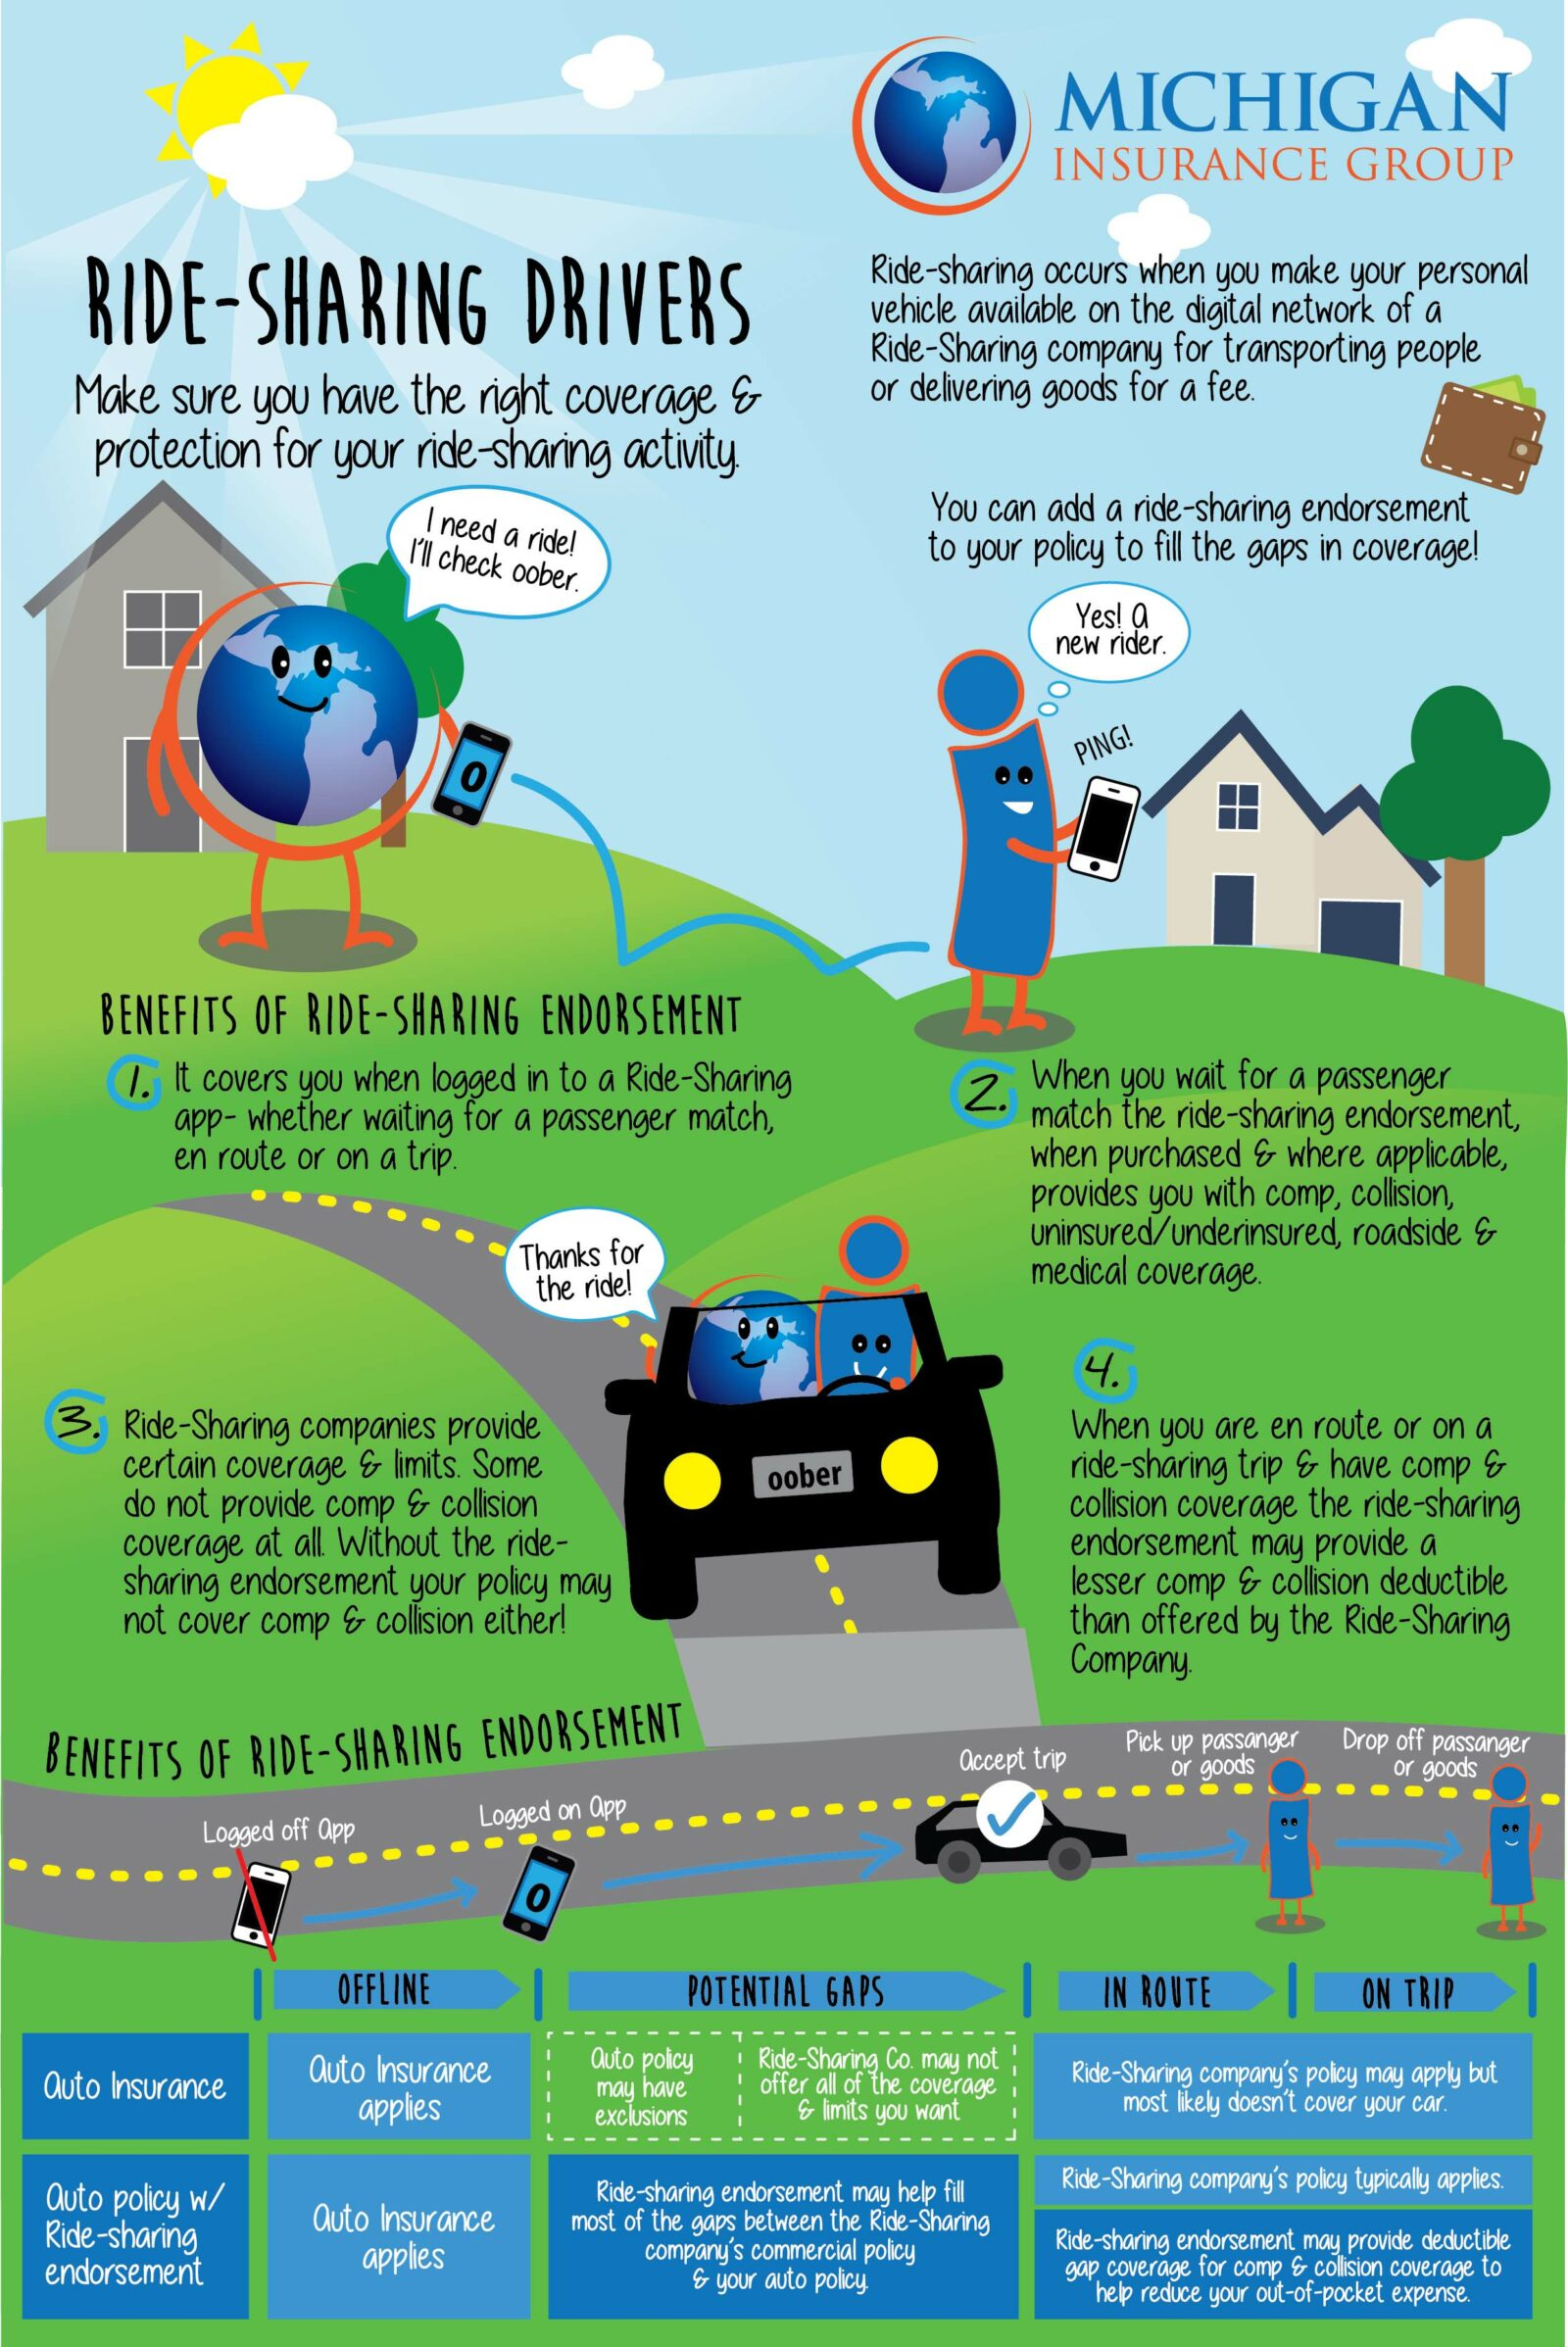 ride-sharing infographic, info about ride-sharing, am i insured for ride-sharing